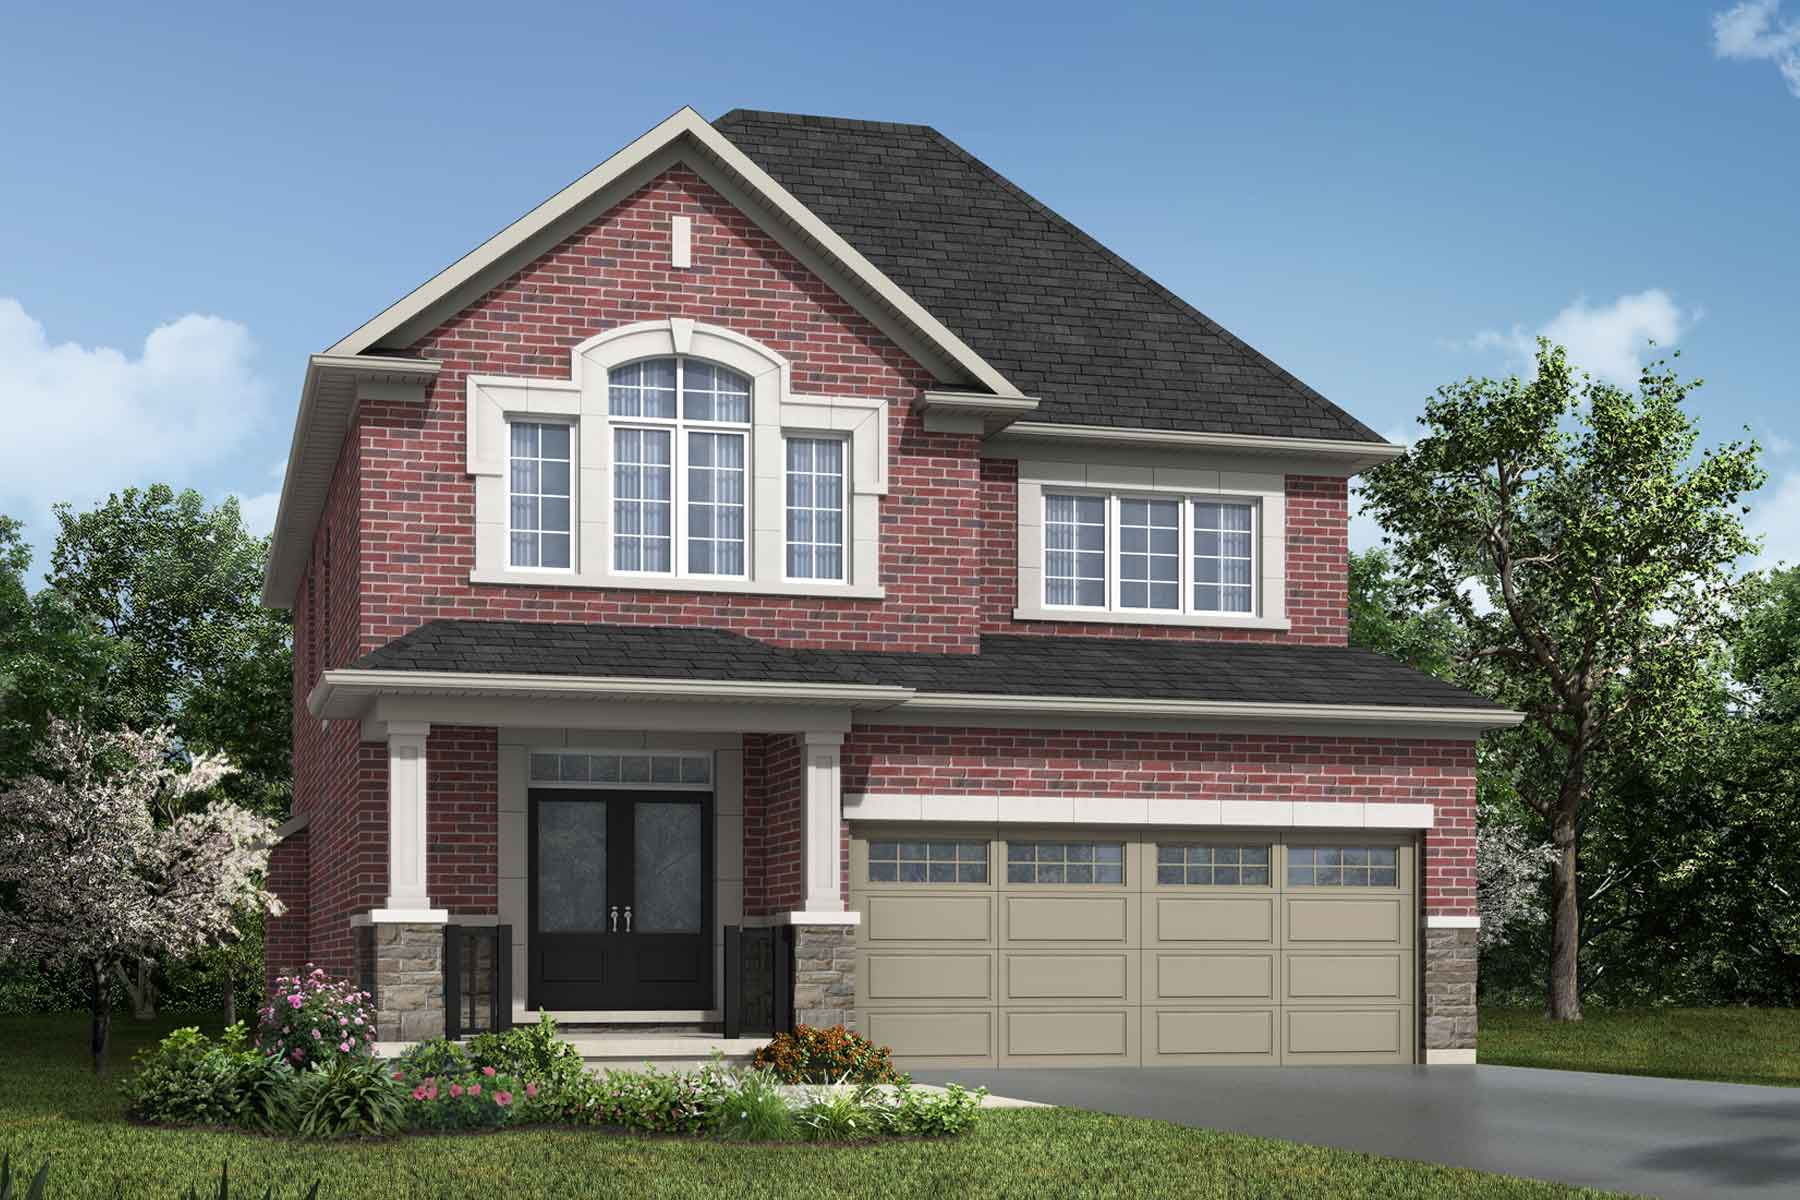 The Hawkesville Plan traditional_southestates_hawkesville at Wildflower Crossing in Kitchener Ontario by Mattamy Homes